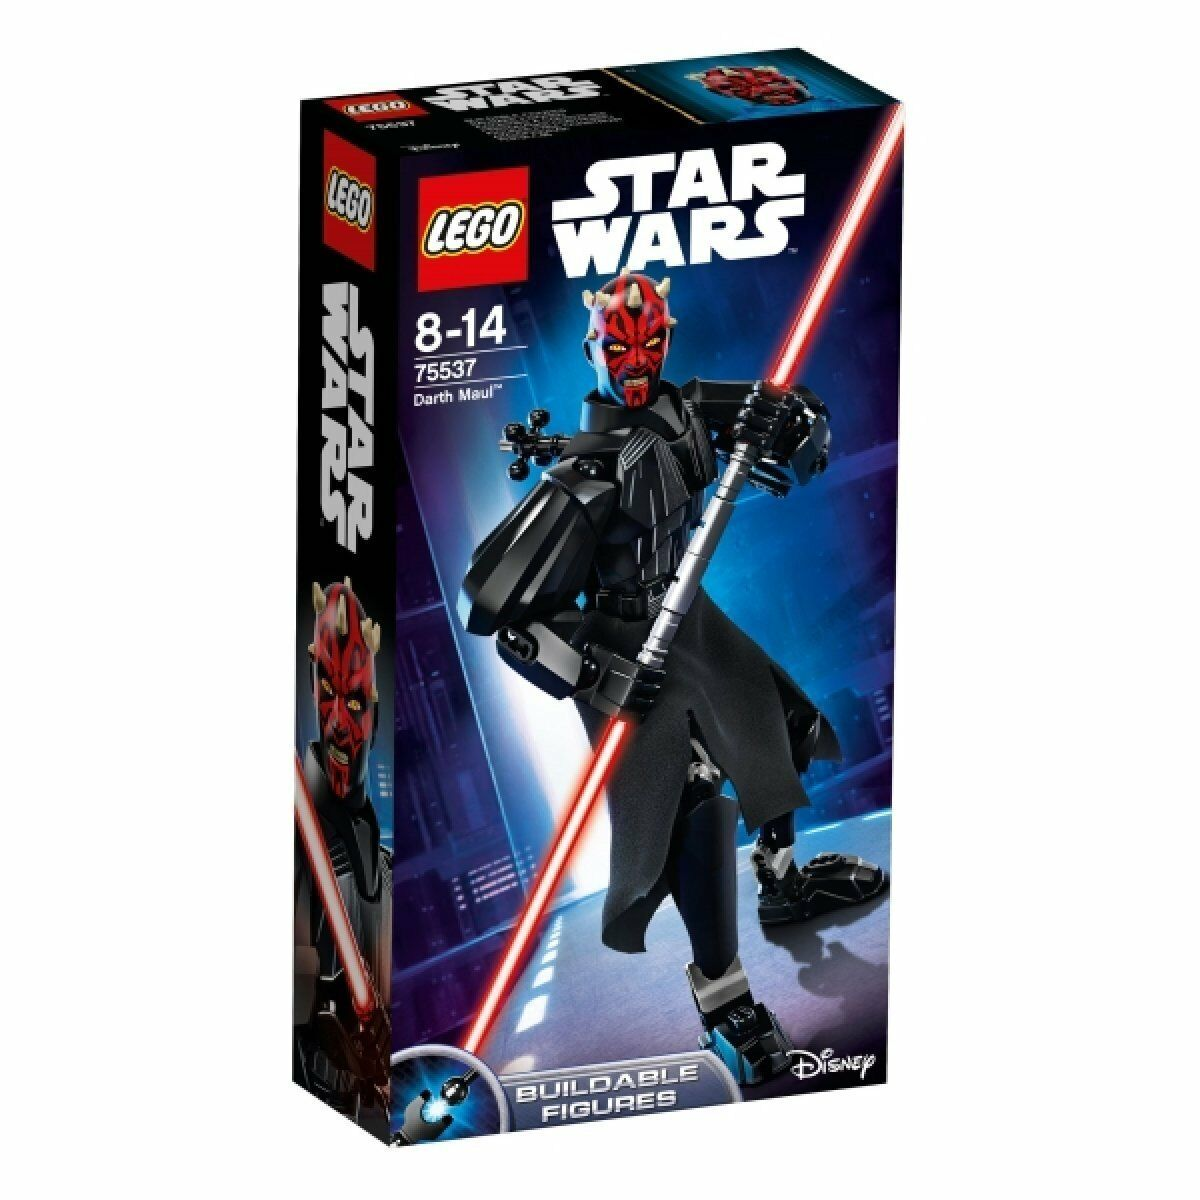 LEGO 75537 Star Wars Actionfigur Darth Maul NEU OVP